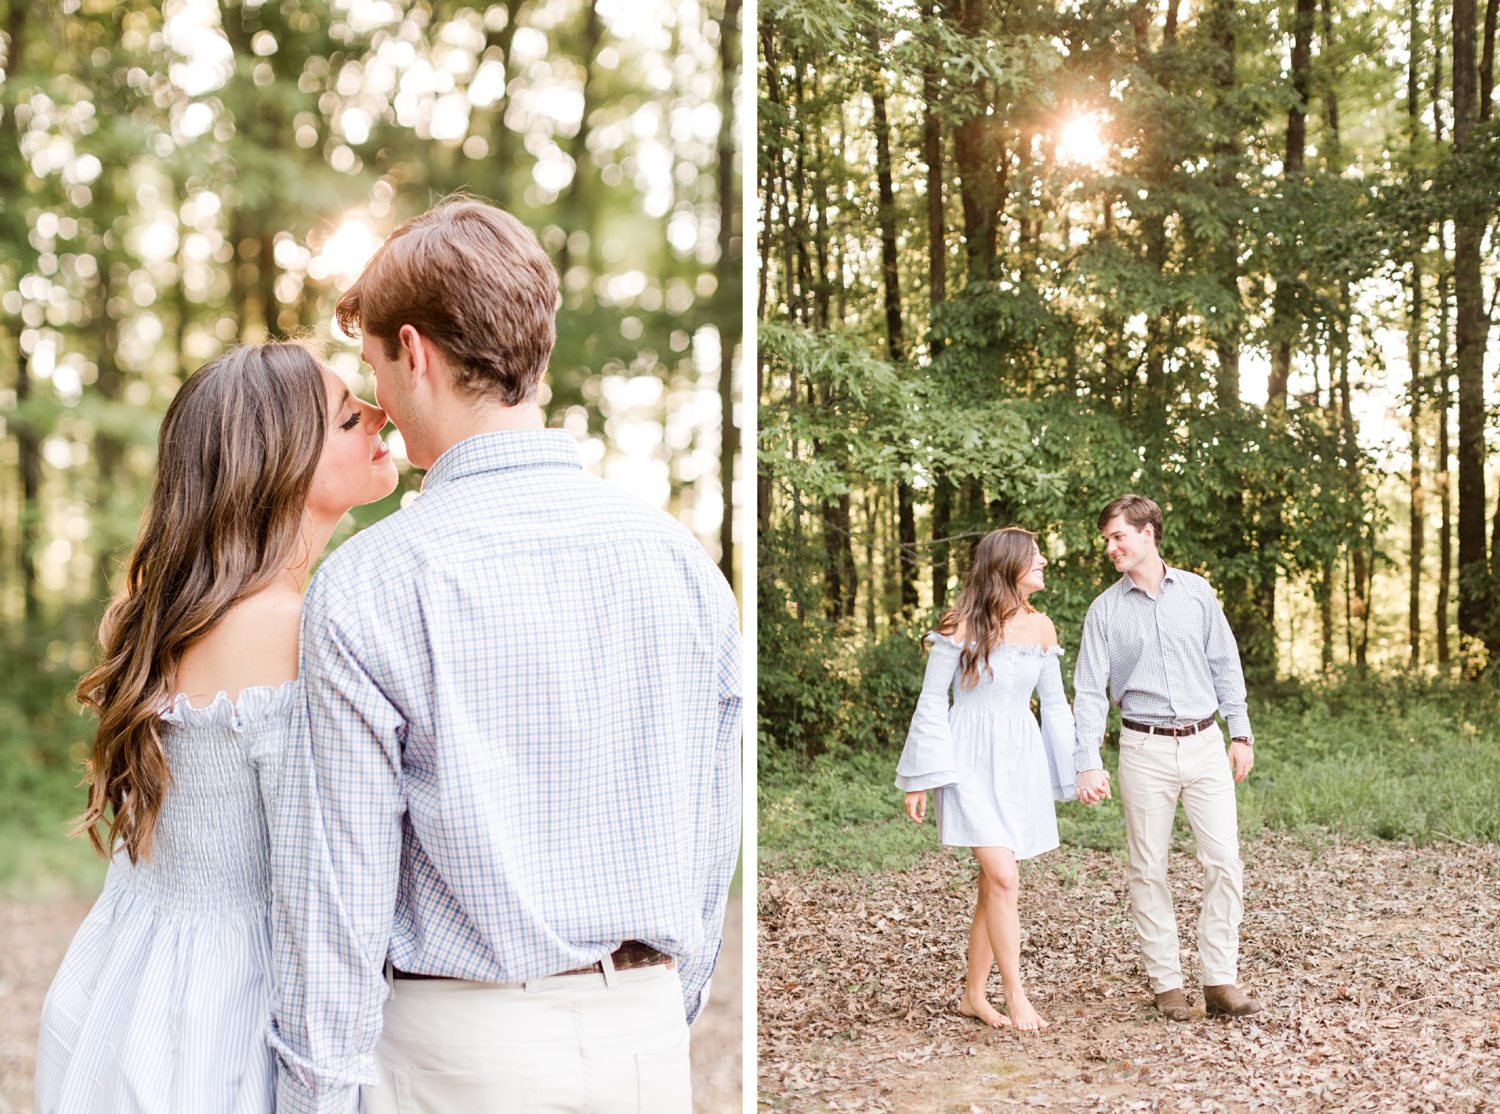 http://amy-hutchinson.com/wp-content/uploads/2018/05/ahp-summer-tennessee-farm-engagement_0012.jpg